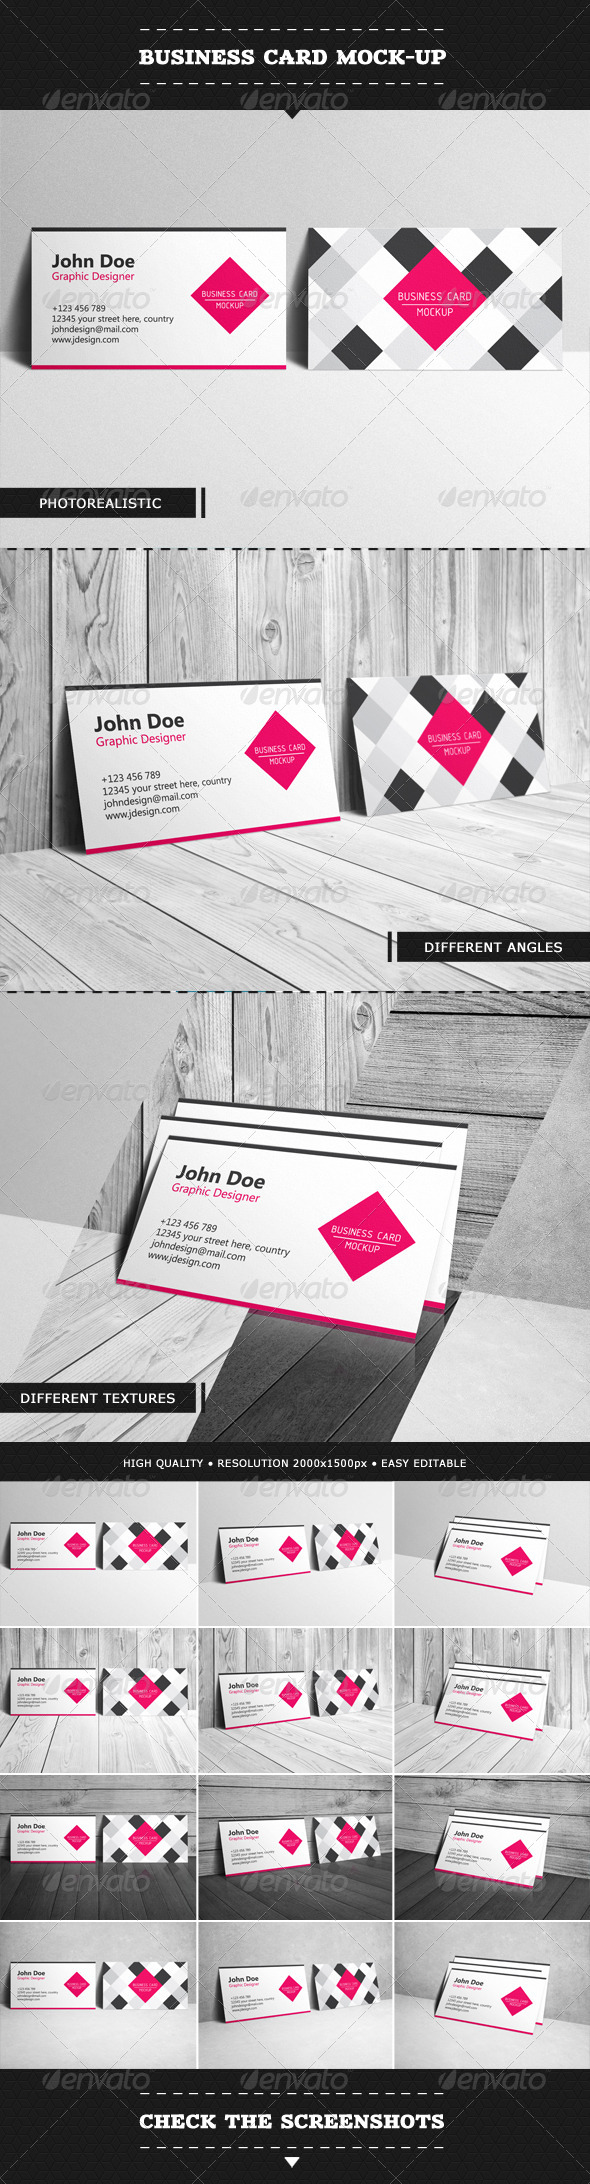 Business Card Mock-up - Product Mock-Ups Graphics